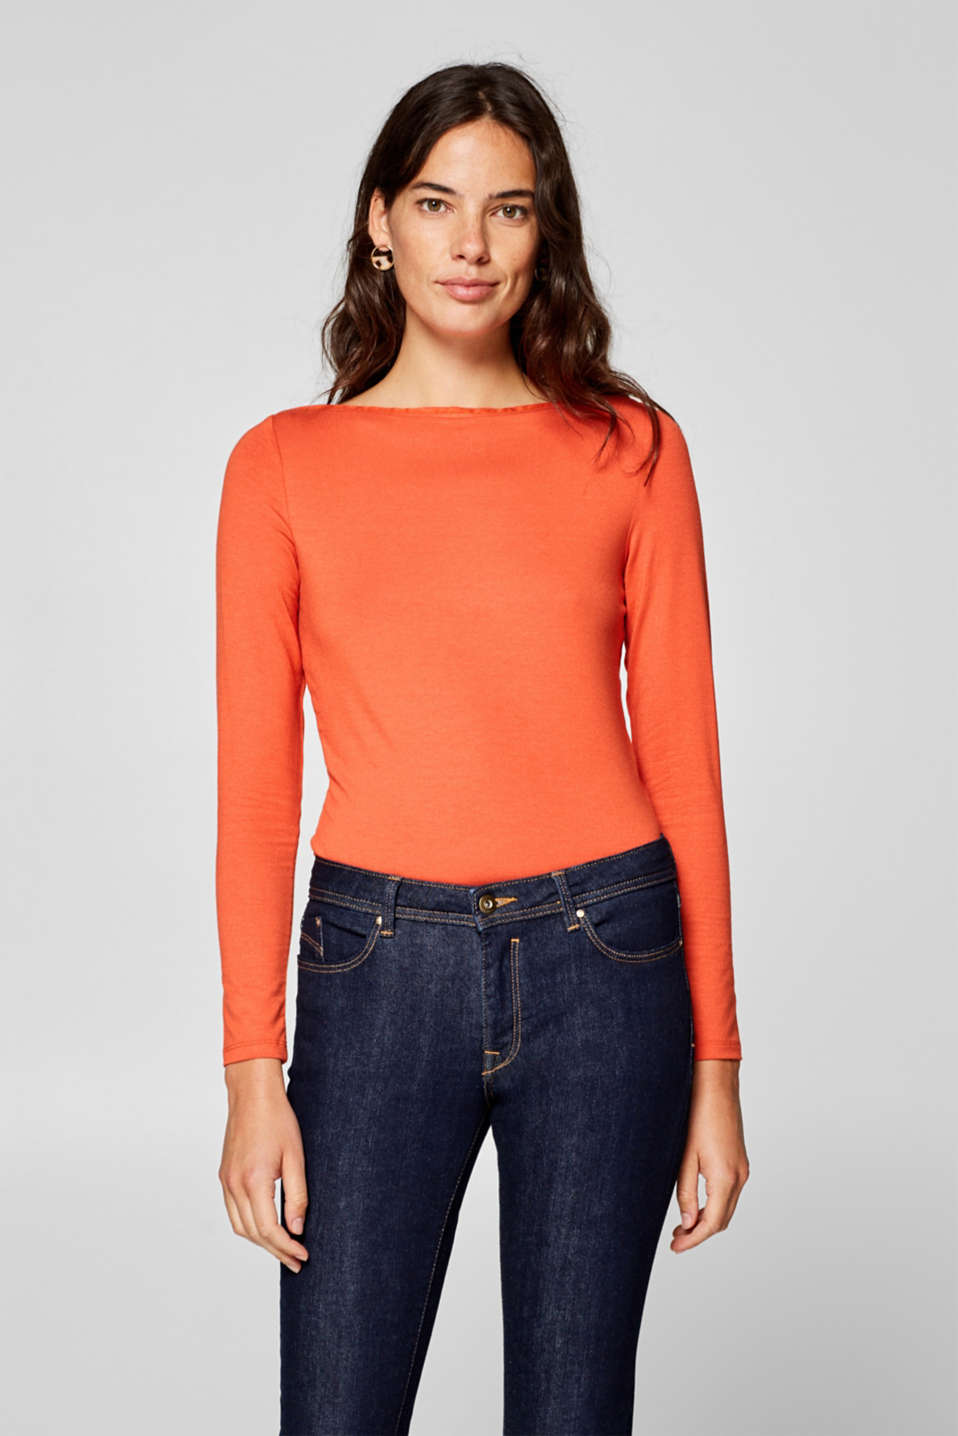 Esprit - Stretchy long sleeve top with a bateau neckline